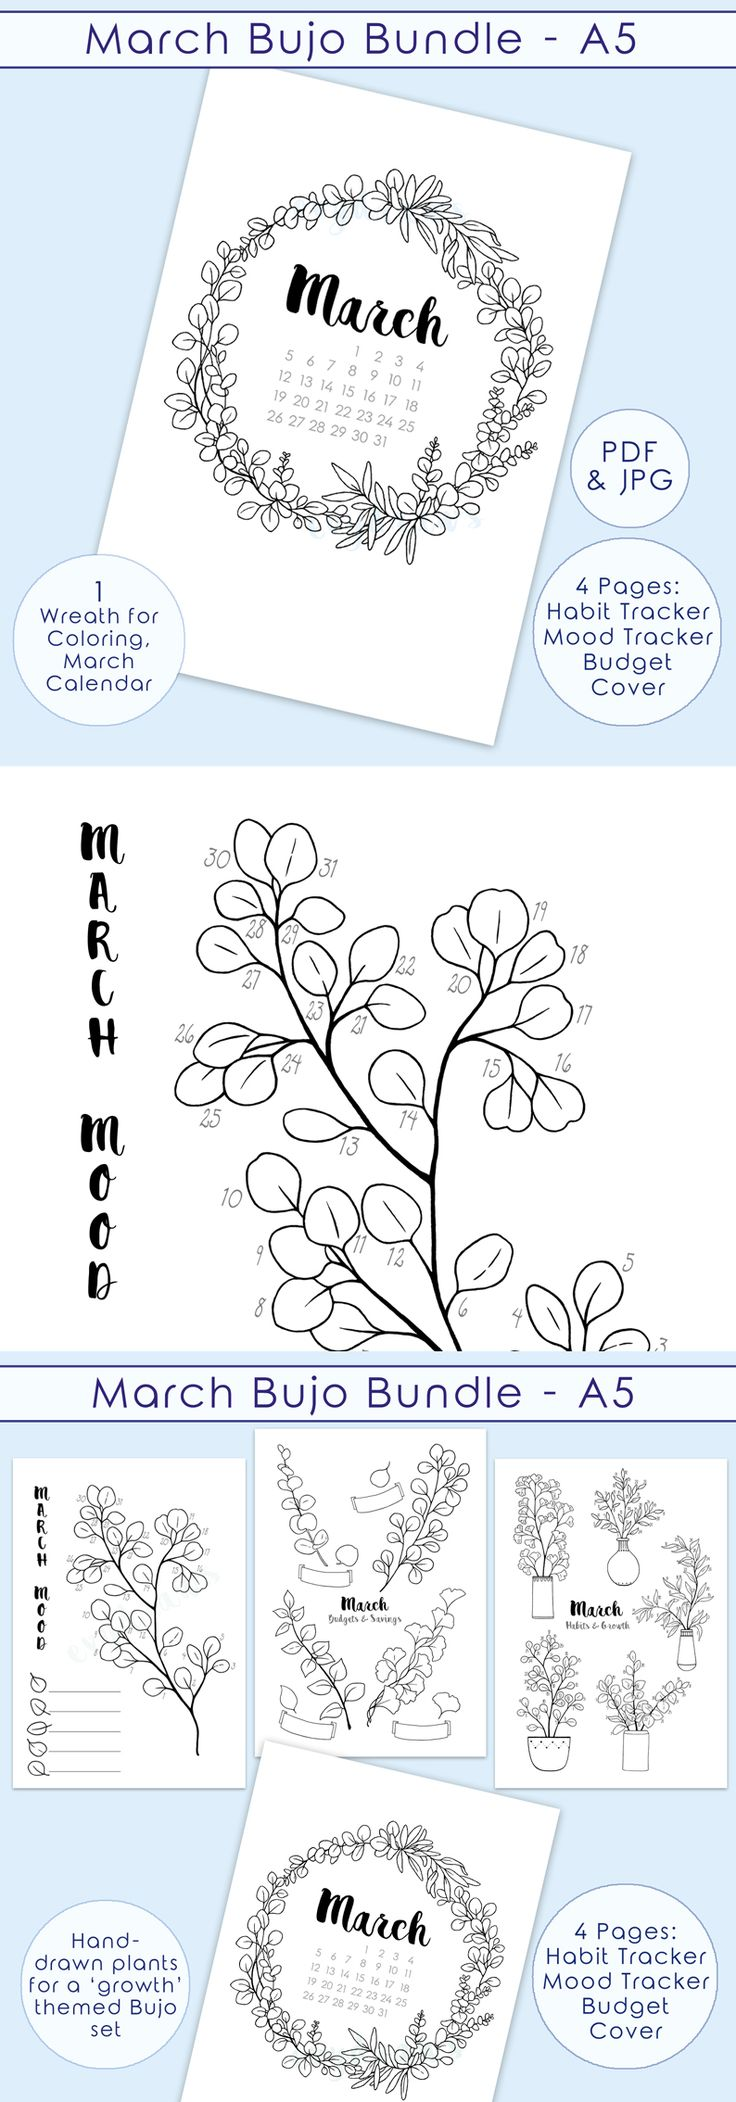 A bullet journal PRINTABLE kit for March - a monthly planner pages set inspired by eucalyptus plants and wreath drawings for coloring.   Cover Page | Habit Tracker | Mood Tracker | Savings Tracker  ... with my hand-drawn art to give a unique spring flair to your journaling practice this month. :)  I really love plant growth as a metaphor for personal growth, so I created a new set of printable journaling pages with a nature & plants theme! Click through the example images to see how each…